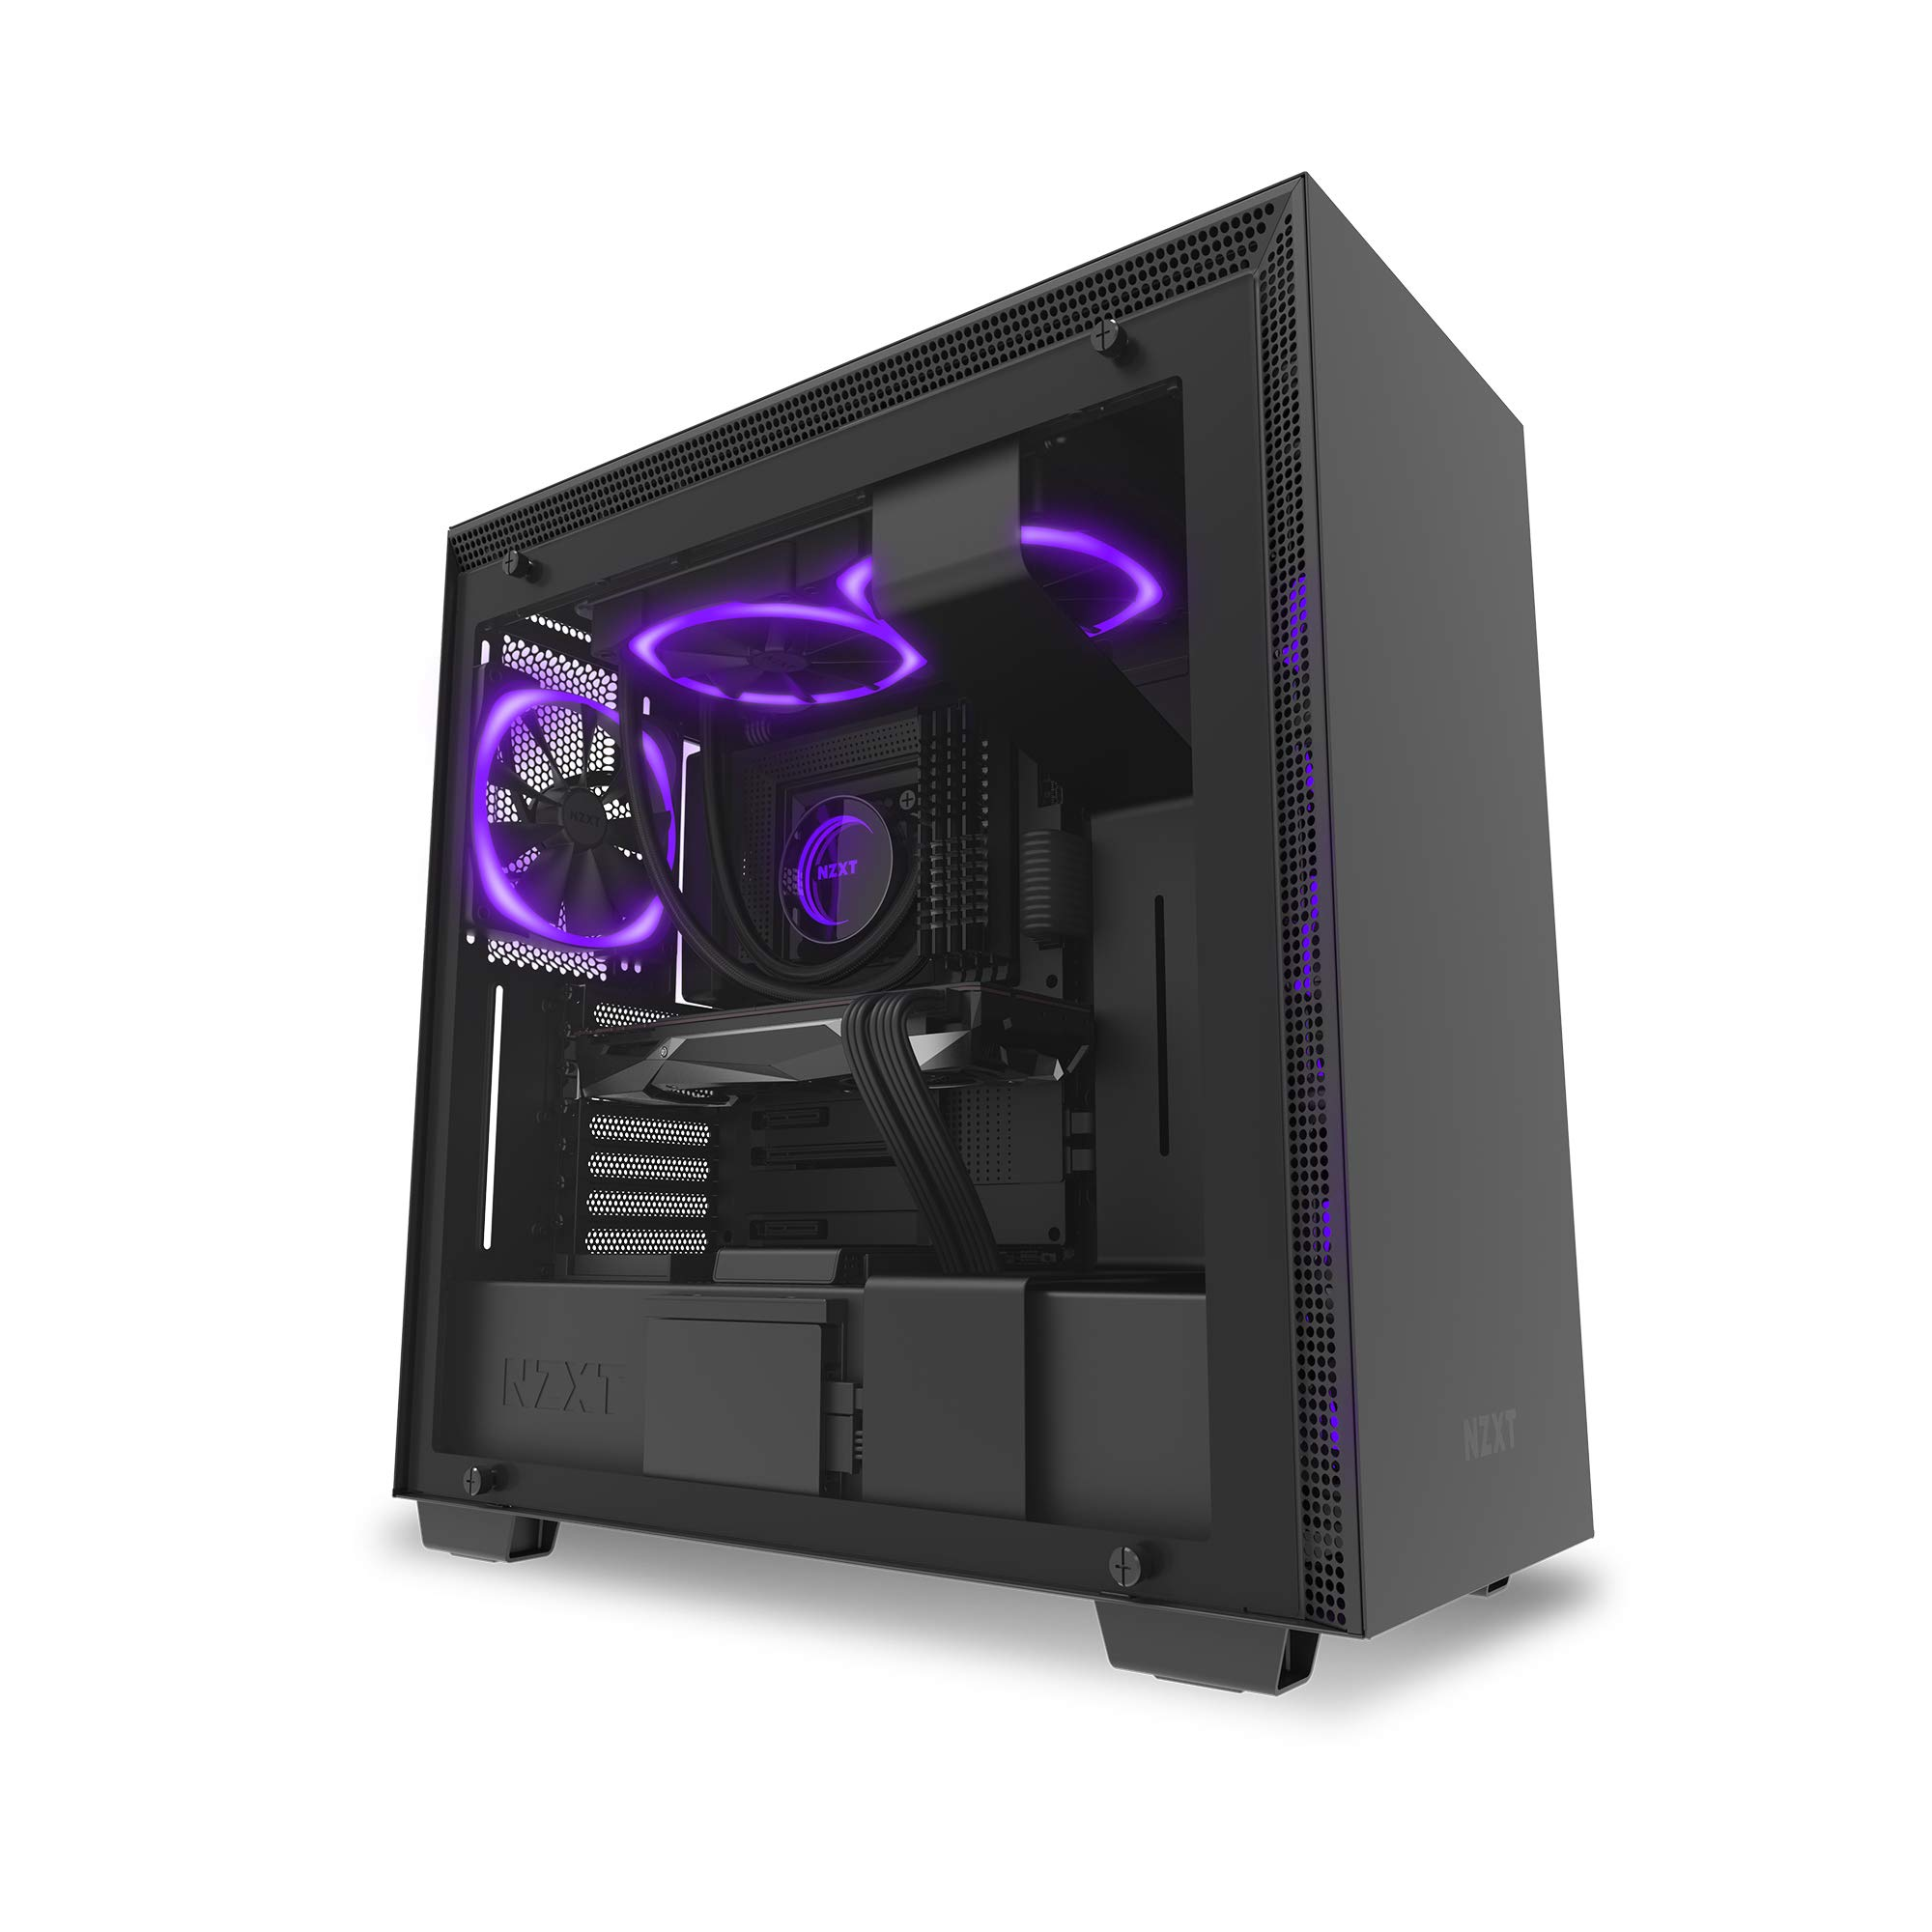 NZXT AER RGB 2 - 3-Pack of 120mm RGB PWM Fans with Hue 2 Lighting Controller - Advanced Lighting Customizations - LED RGB PWM Fans - Winglet Tips - Fluid Dynamic Bearing -  PC Case Fan by NZXT (Image #6)